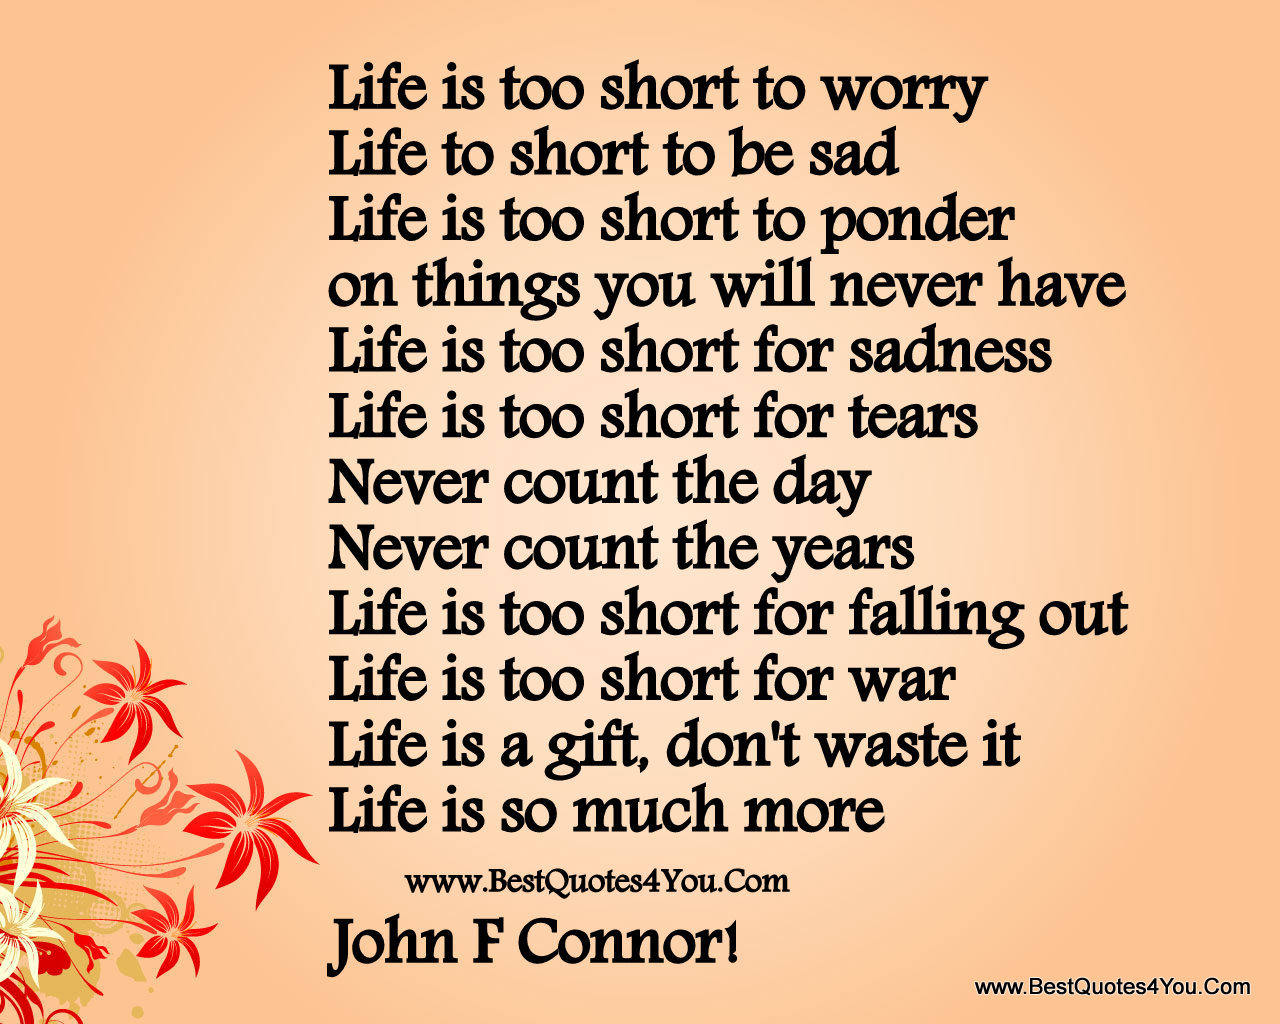 Inspirational Picture Quotes...: Life is short.